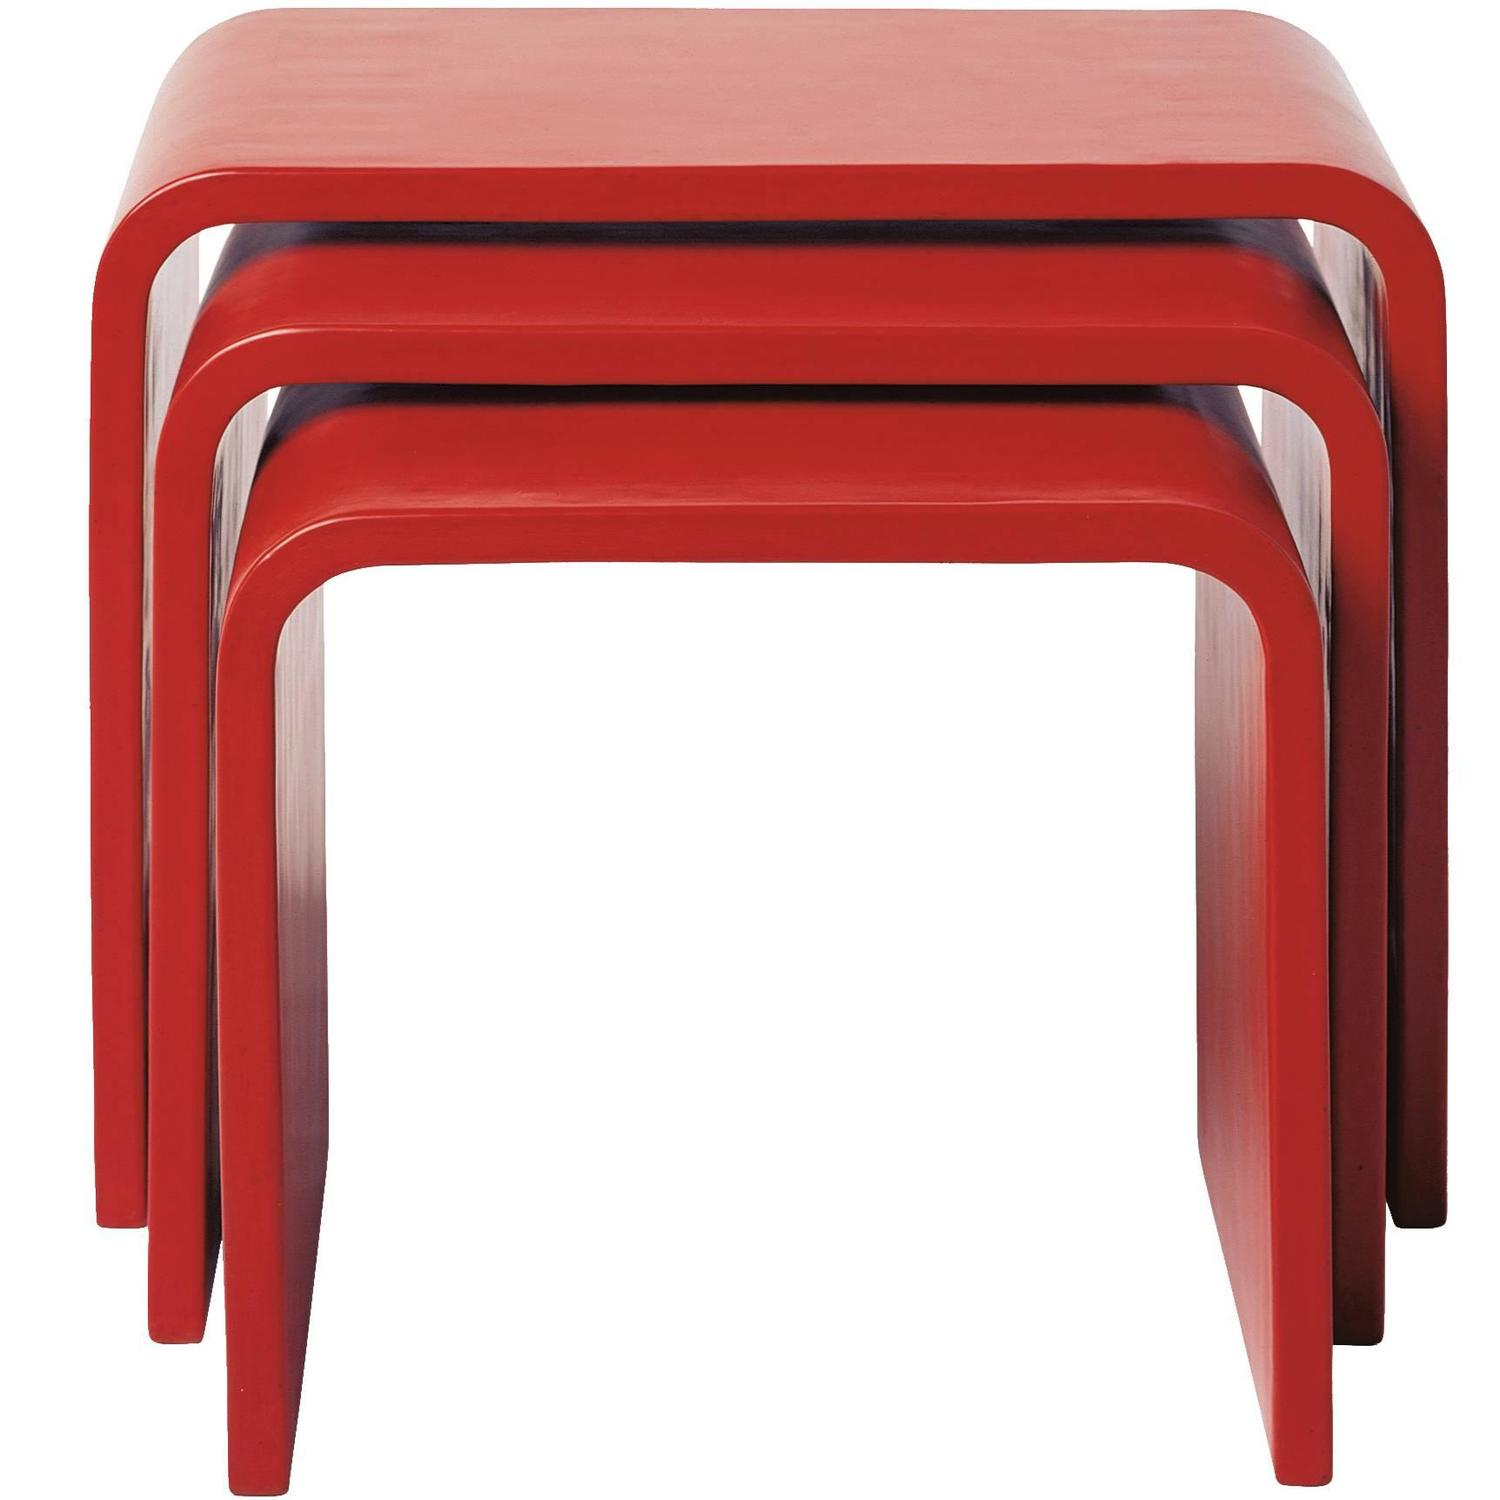 Set Of Waterfall Red Lacquer Nesting Table By Robert Kuo, Limited Edition  For Sale At 1stdibs